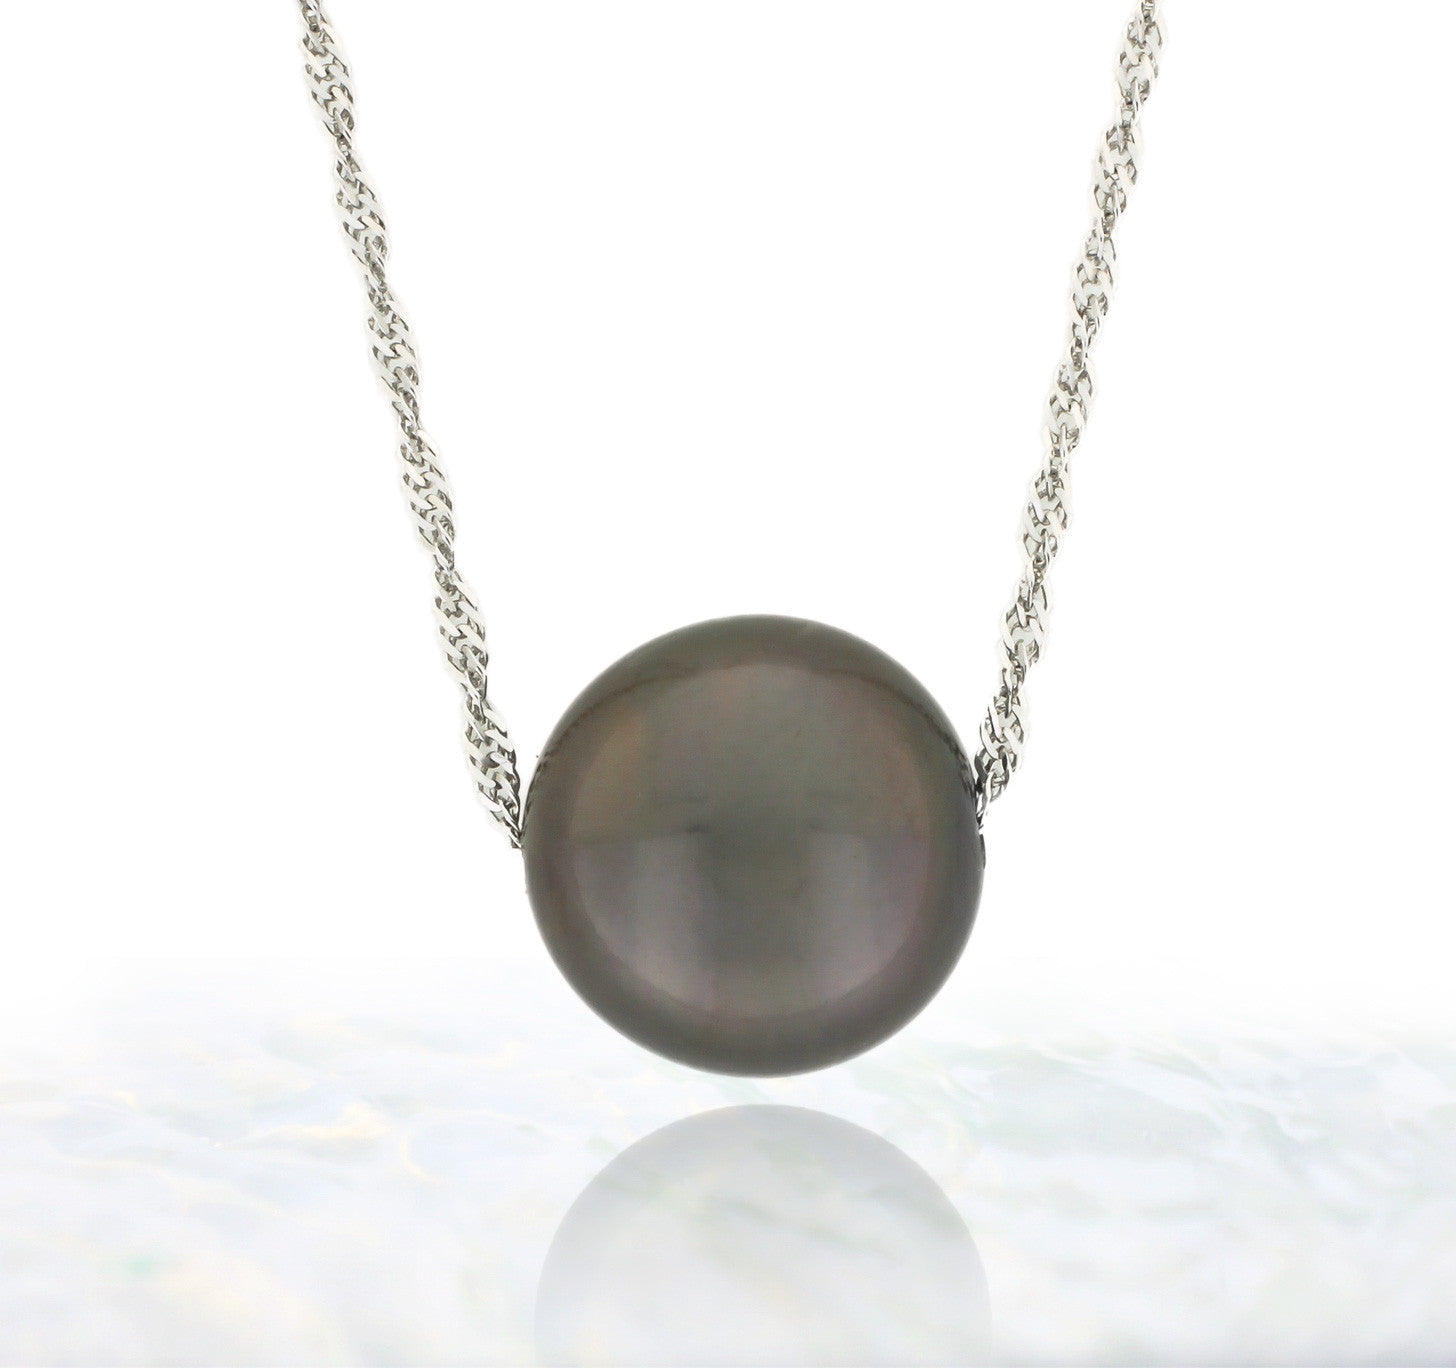 Tahitian pearl necklace - Floating design - 14k white gold ...